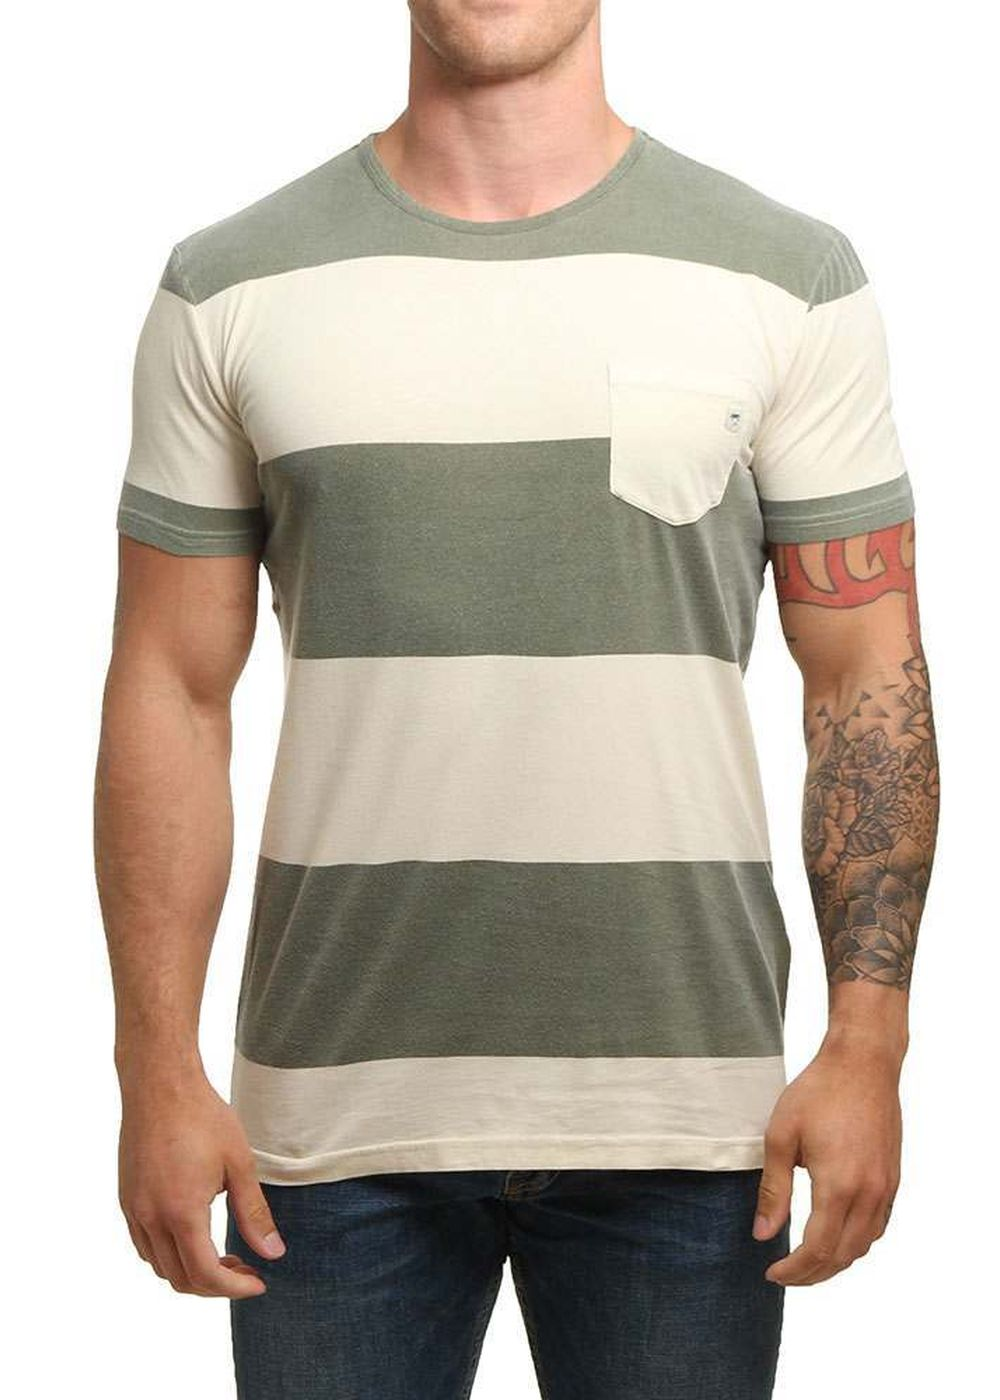 quiksilver-maxed-out-hero-tee-four-leaf-clover